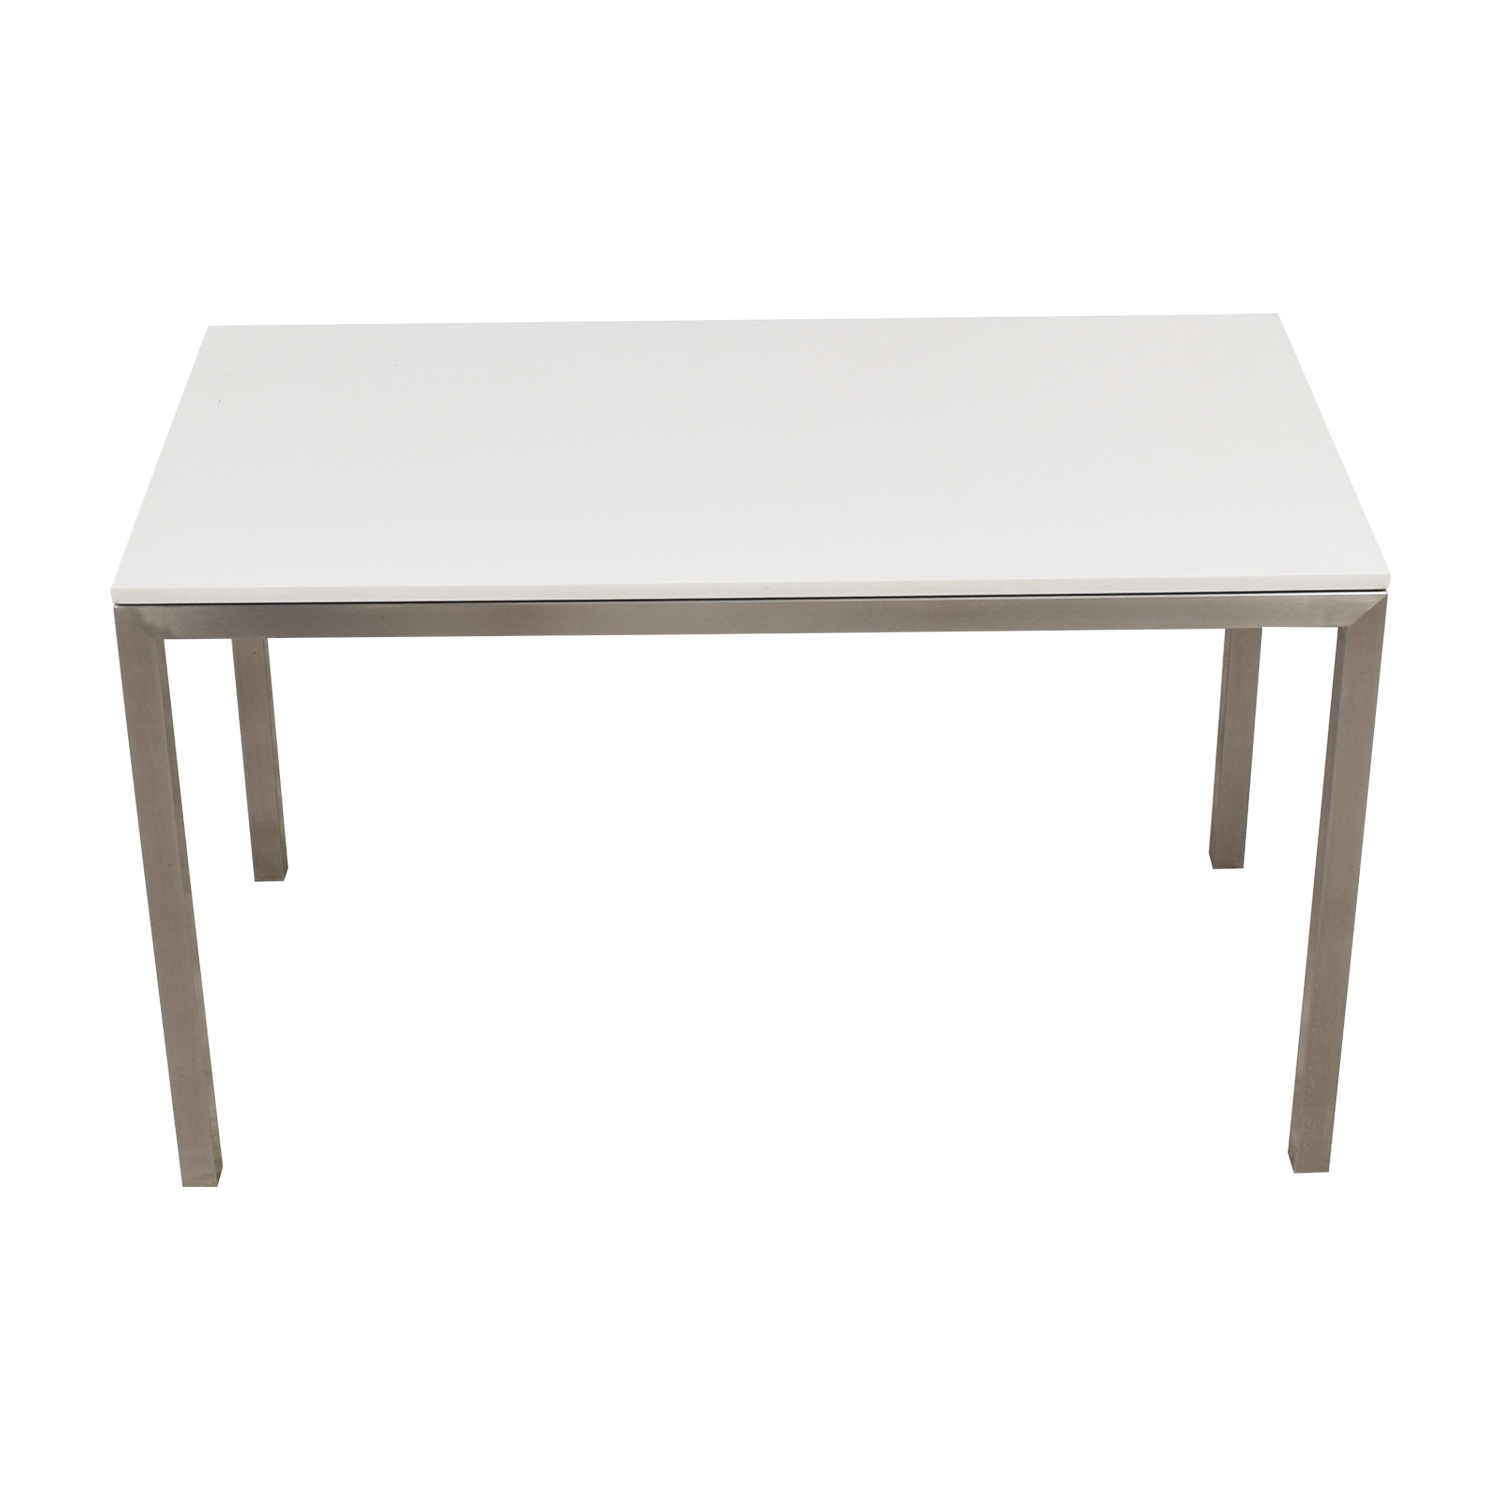 Room & Board Room & Board Portica White Marble & Metal Table on sale